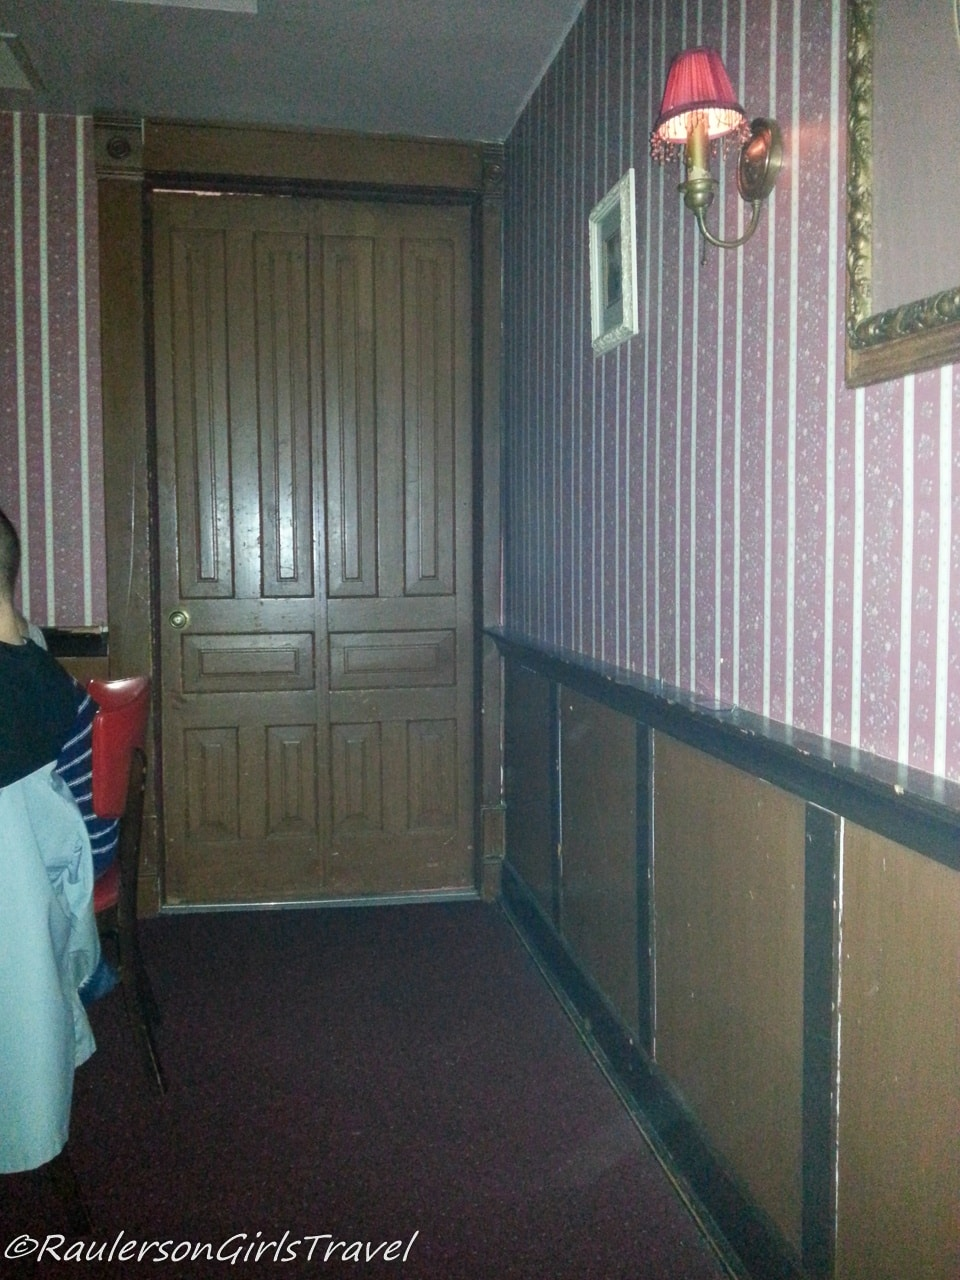 Streak of light during seance - Holly Hotel Haunted